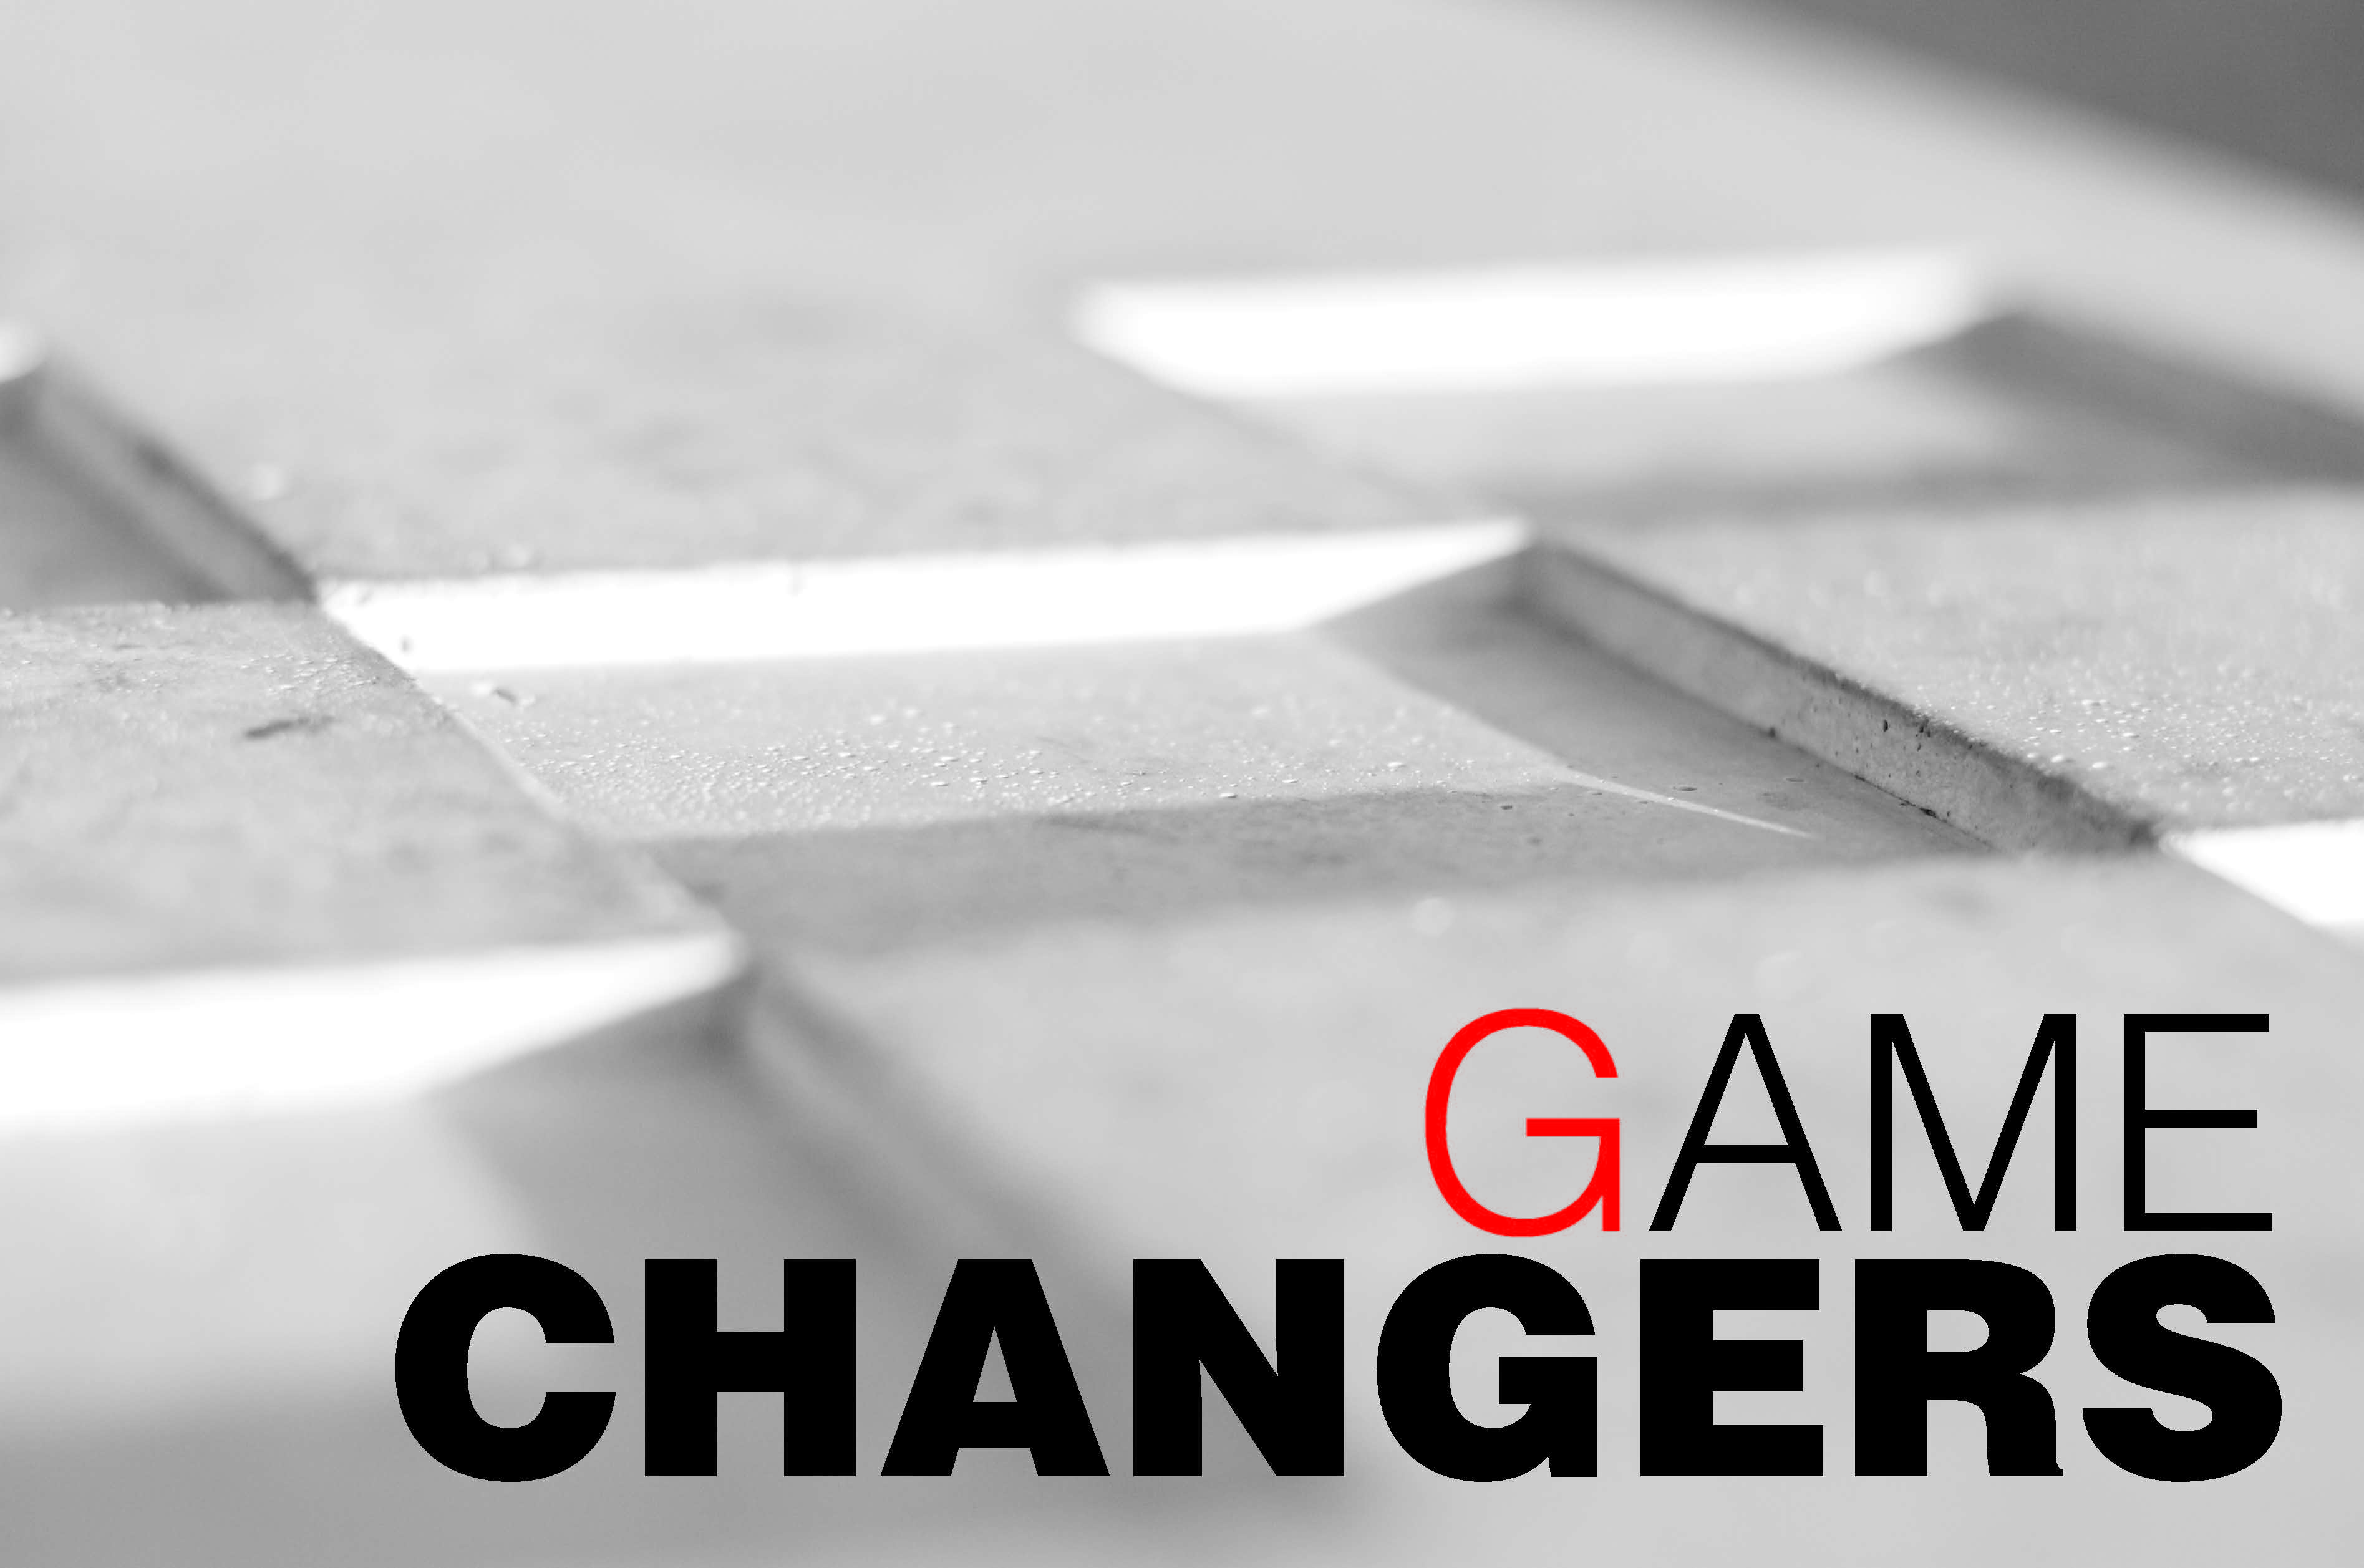 The Game Changers in Movie Theaters | Fathom Events